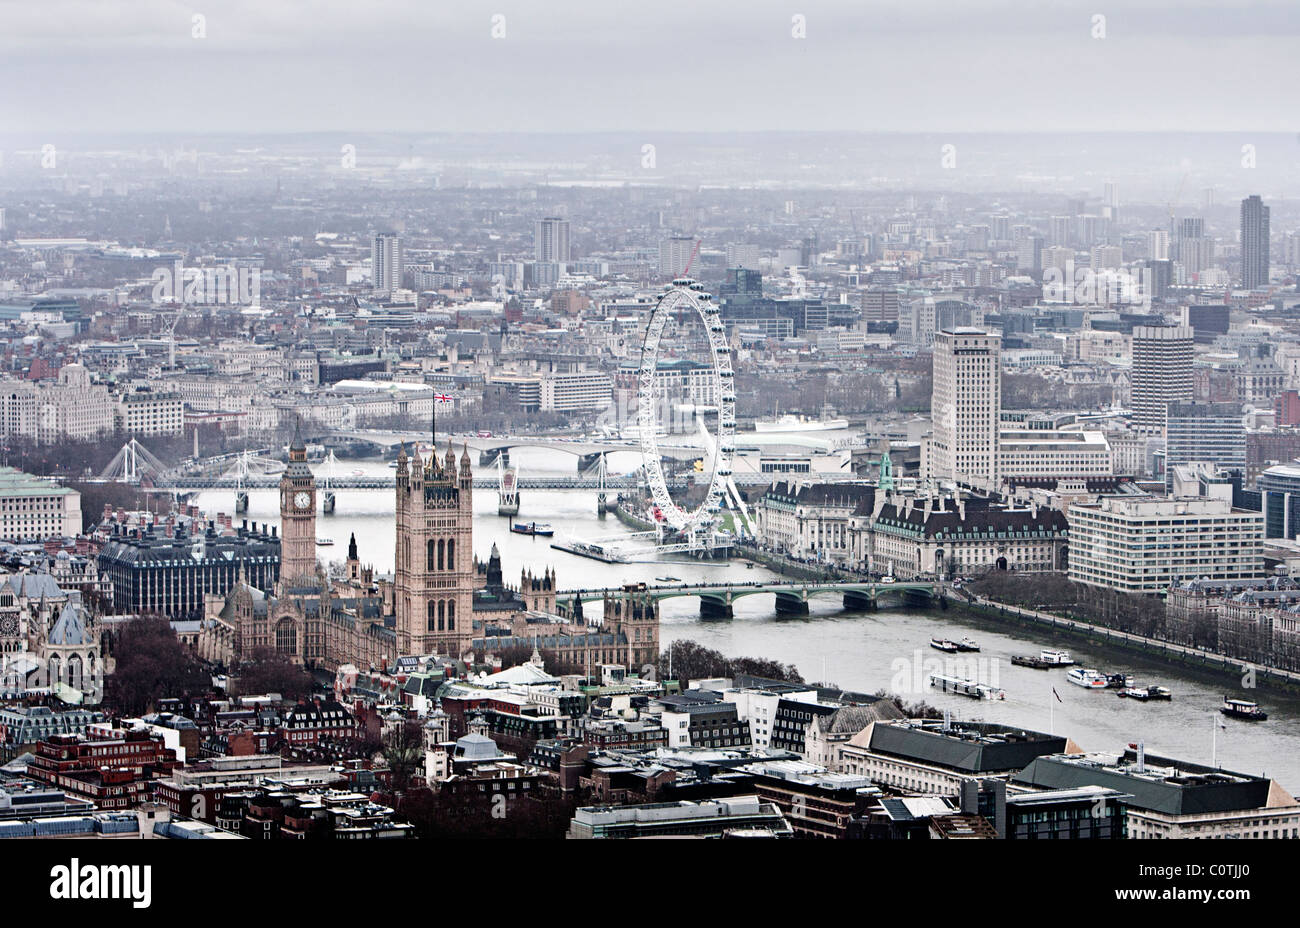 Aerial View of the City Of London, Greater London - Stock Image